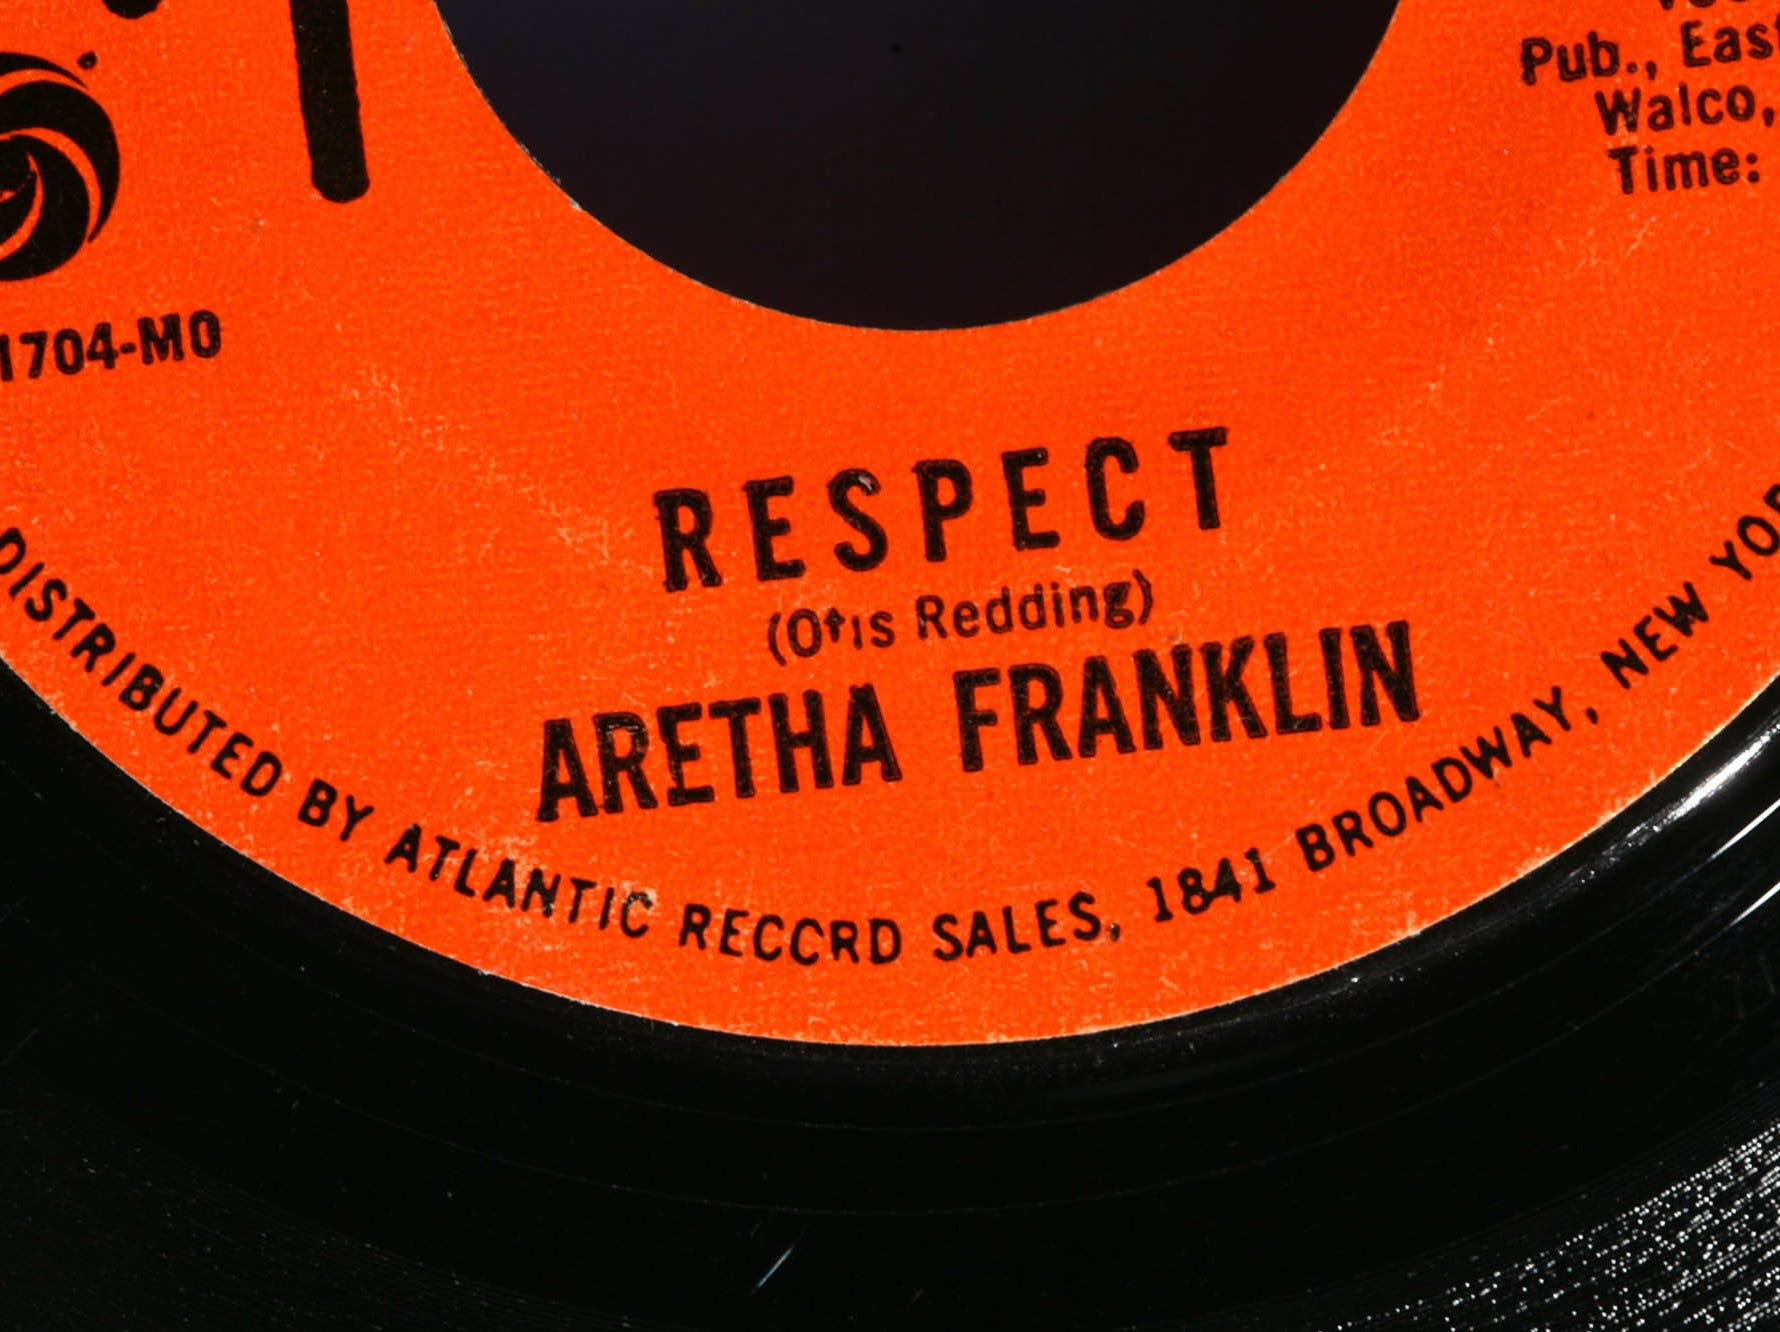 """2007 marked the 40th anniversary of Aretha Franklin's Billboard hit """"Respect."""""""